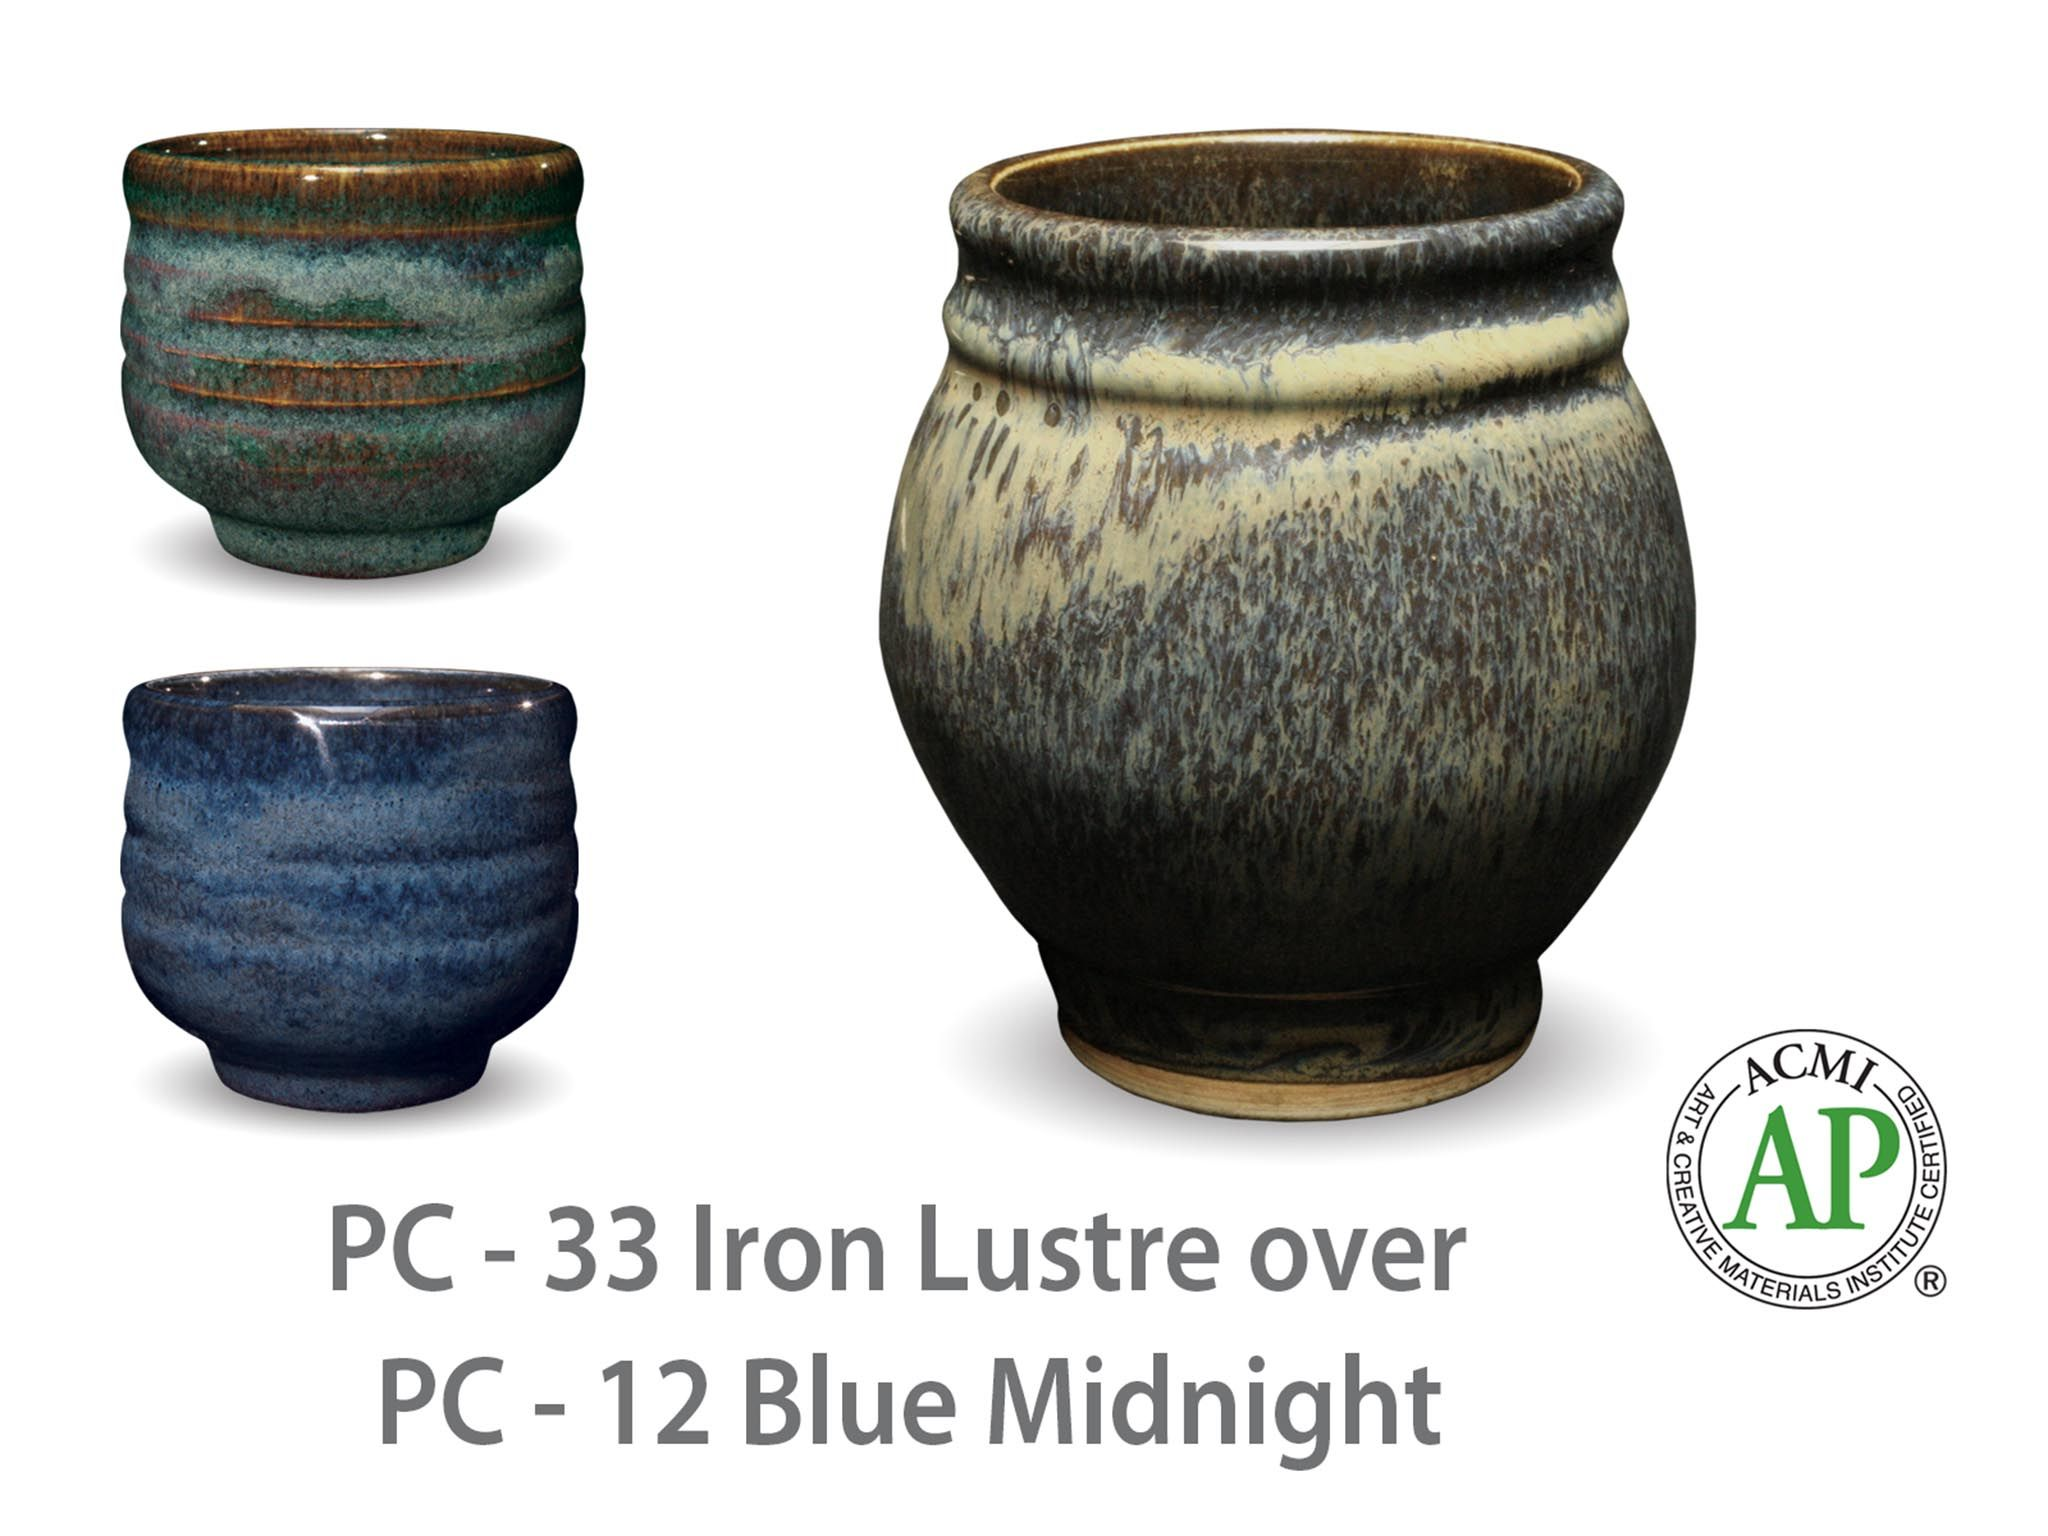 Photo of cup glazed with PC-33 Iron Lustre over PC-12 Blue Midnight